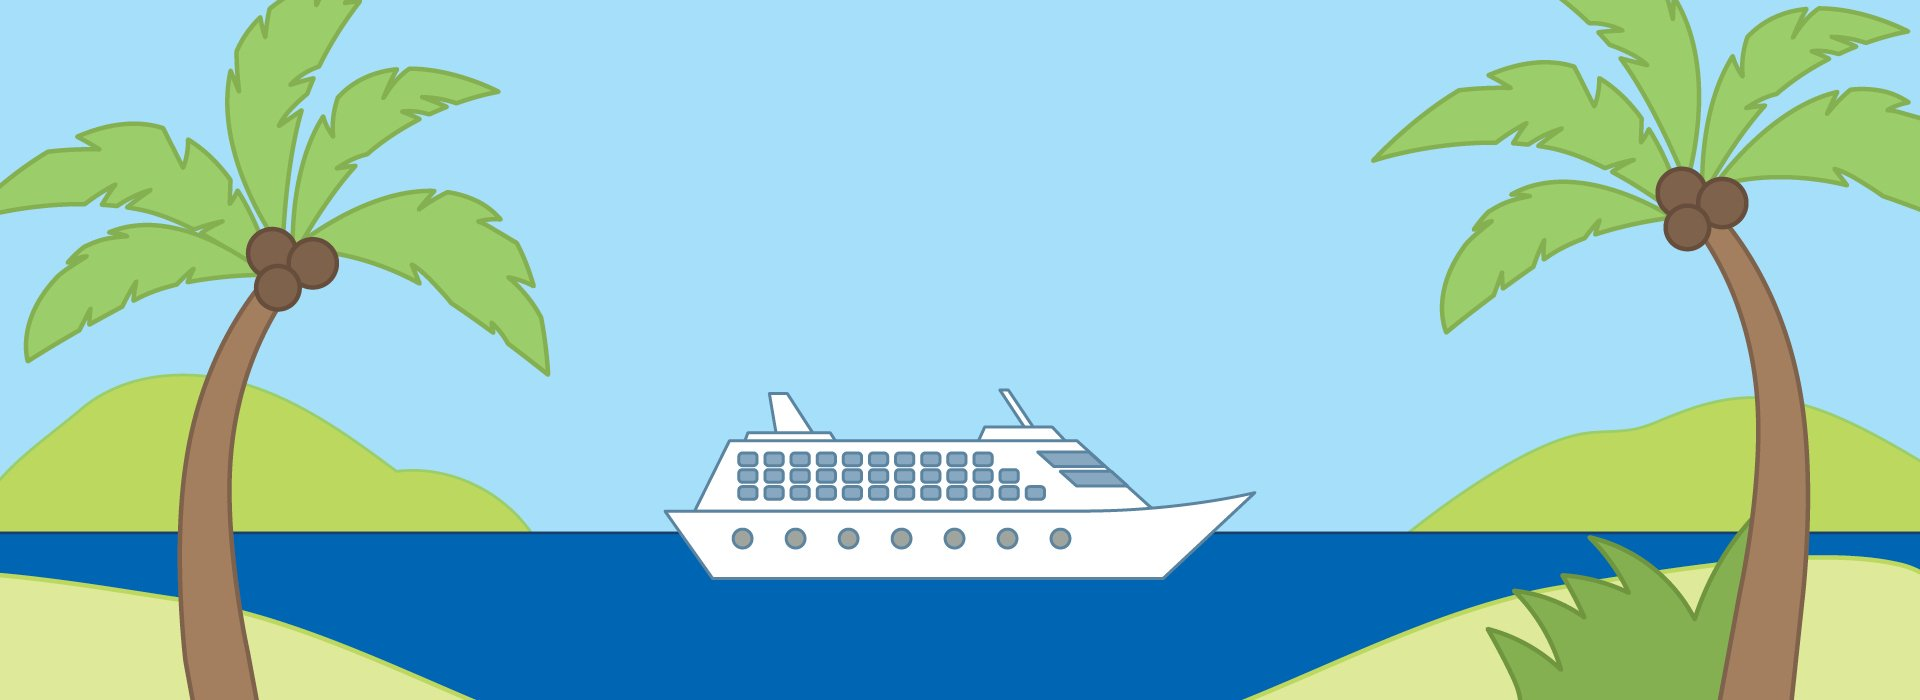 audika_cruisepromo_webbanner_landing_sep19_test